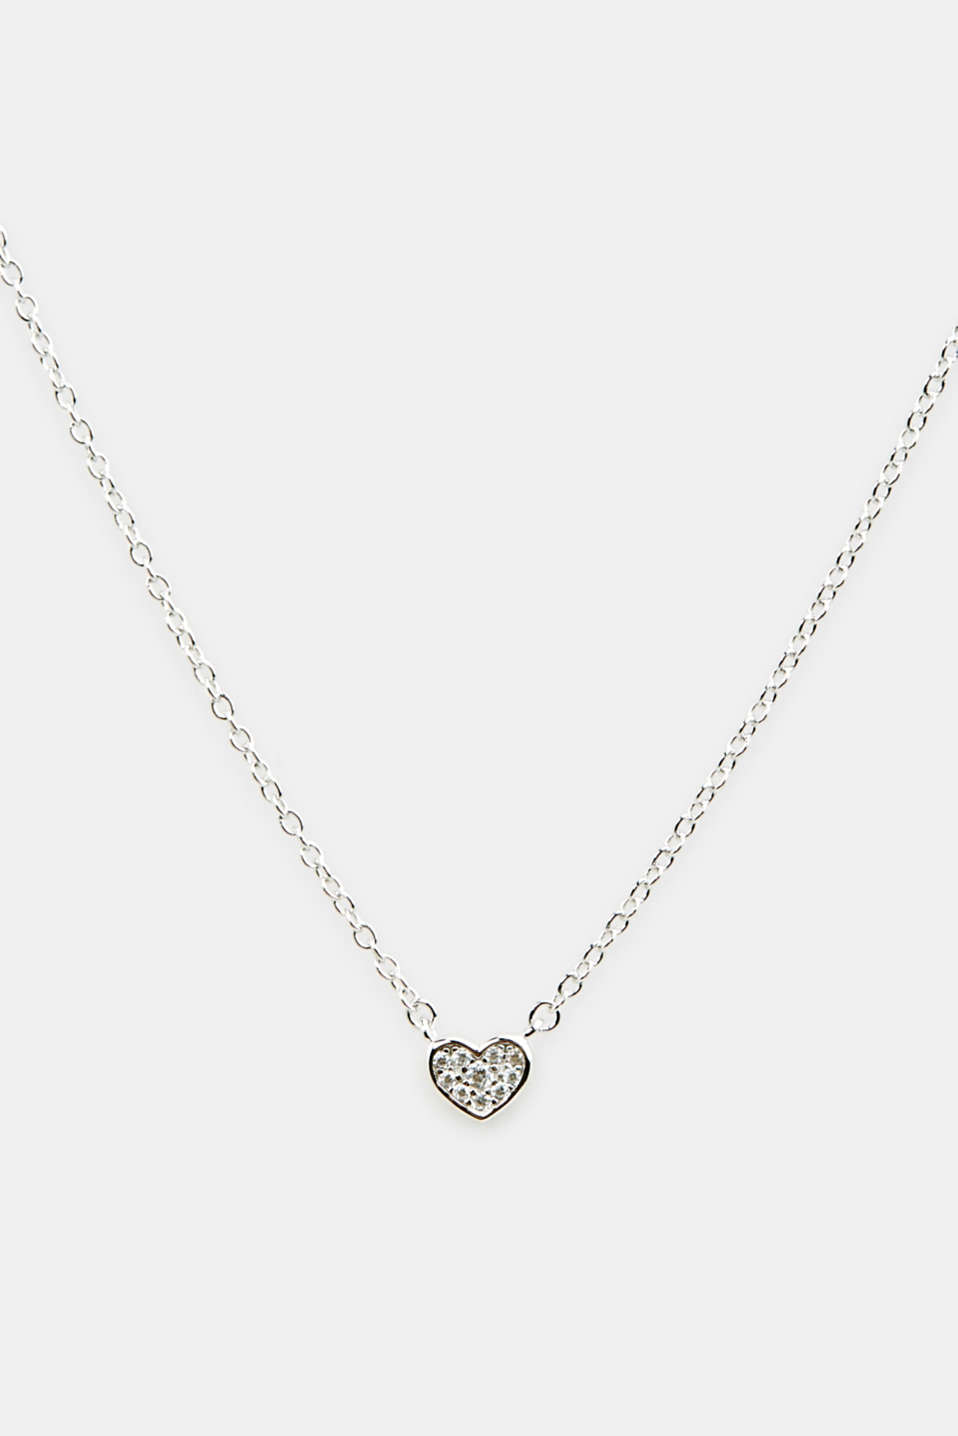 Necklace with zirconia pendant, sterling silver, LCSILVER, detail image number 0